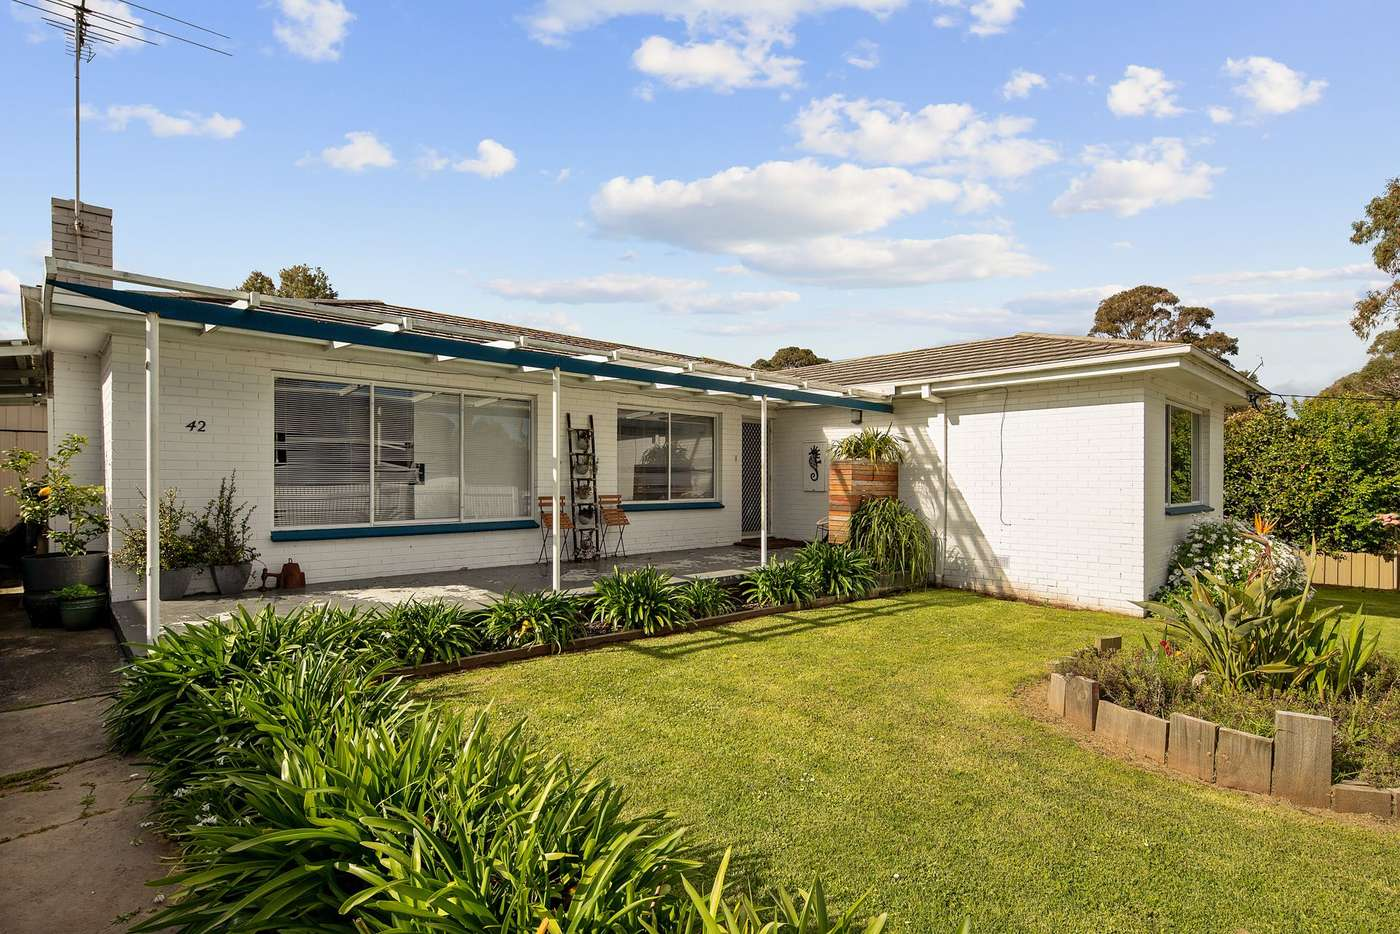 Main view of Homely house listing, 42 Church Street, Cowes VIC 3922